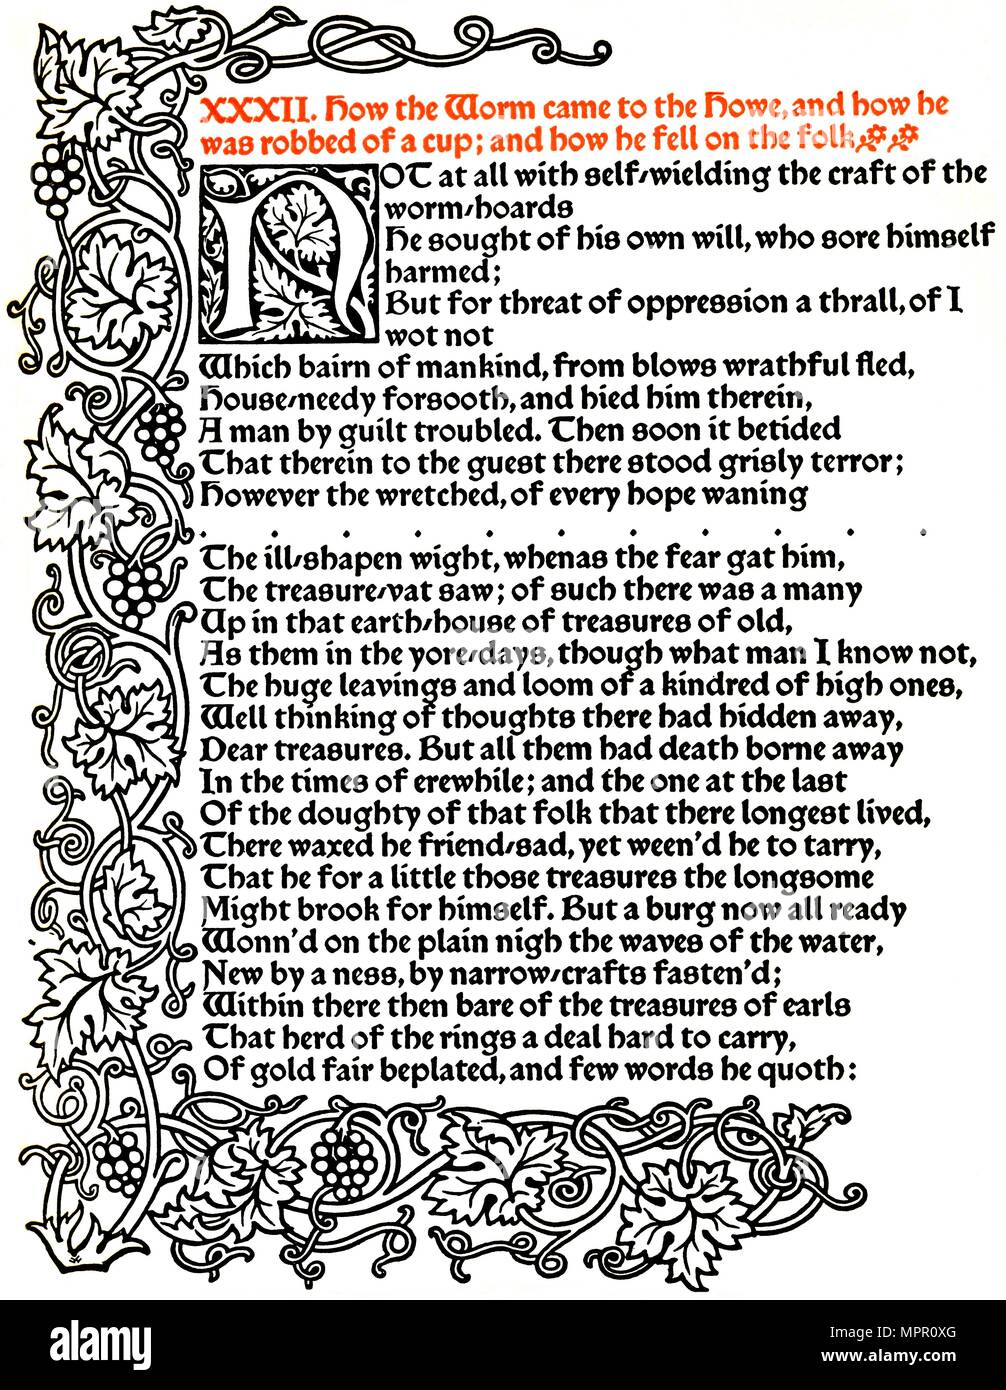 'Kelmscott Press: Page from The Tale of Beowulf Printed in the Troy Type', c.1895, (1914).  Artist: William Morris. - Stock Image